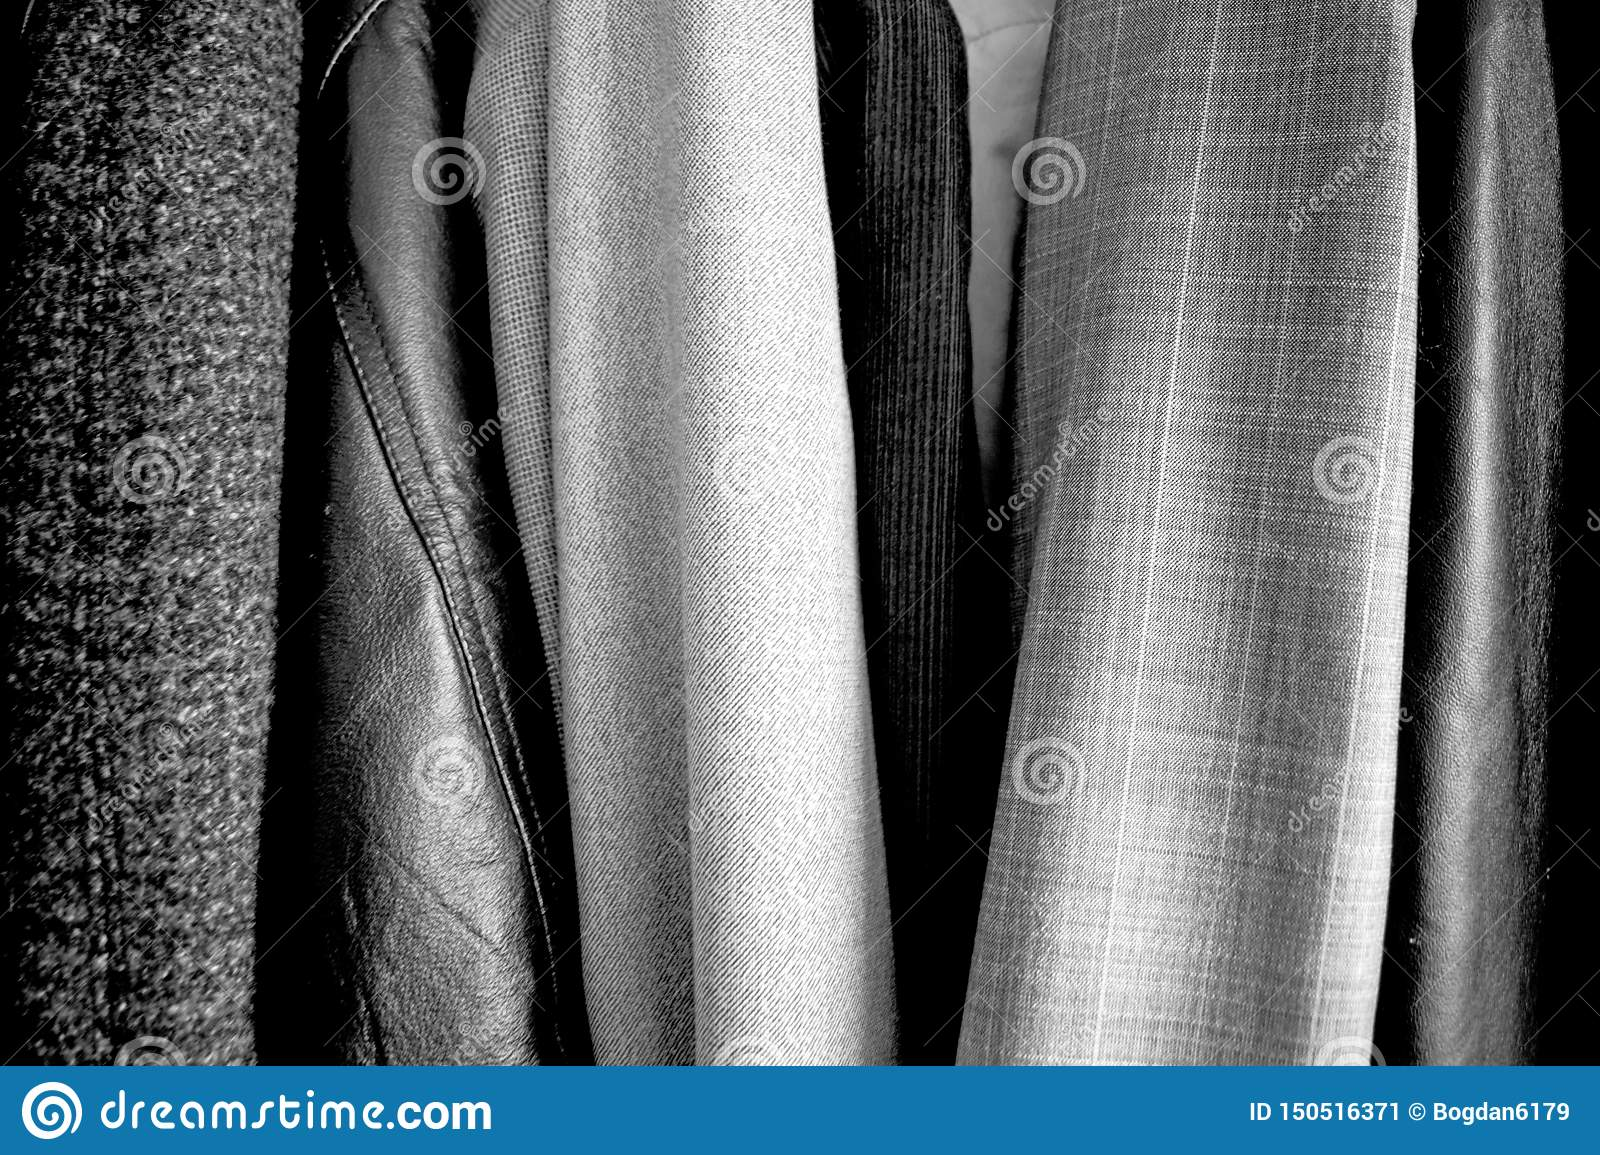 Different clothes placed in the wardrobe. Black and white. Good texture